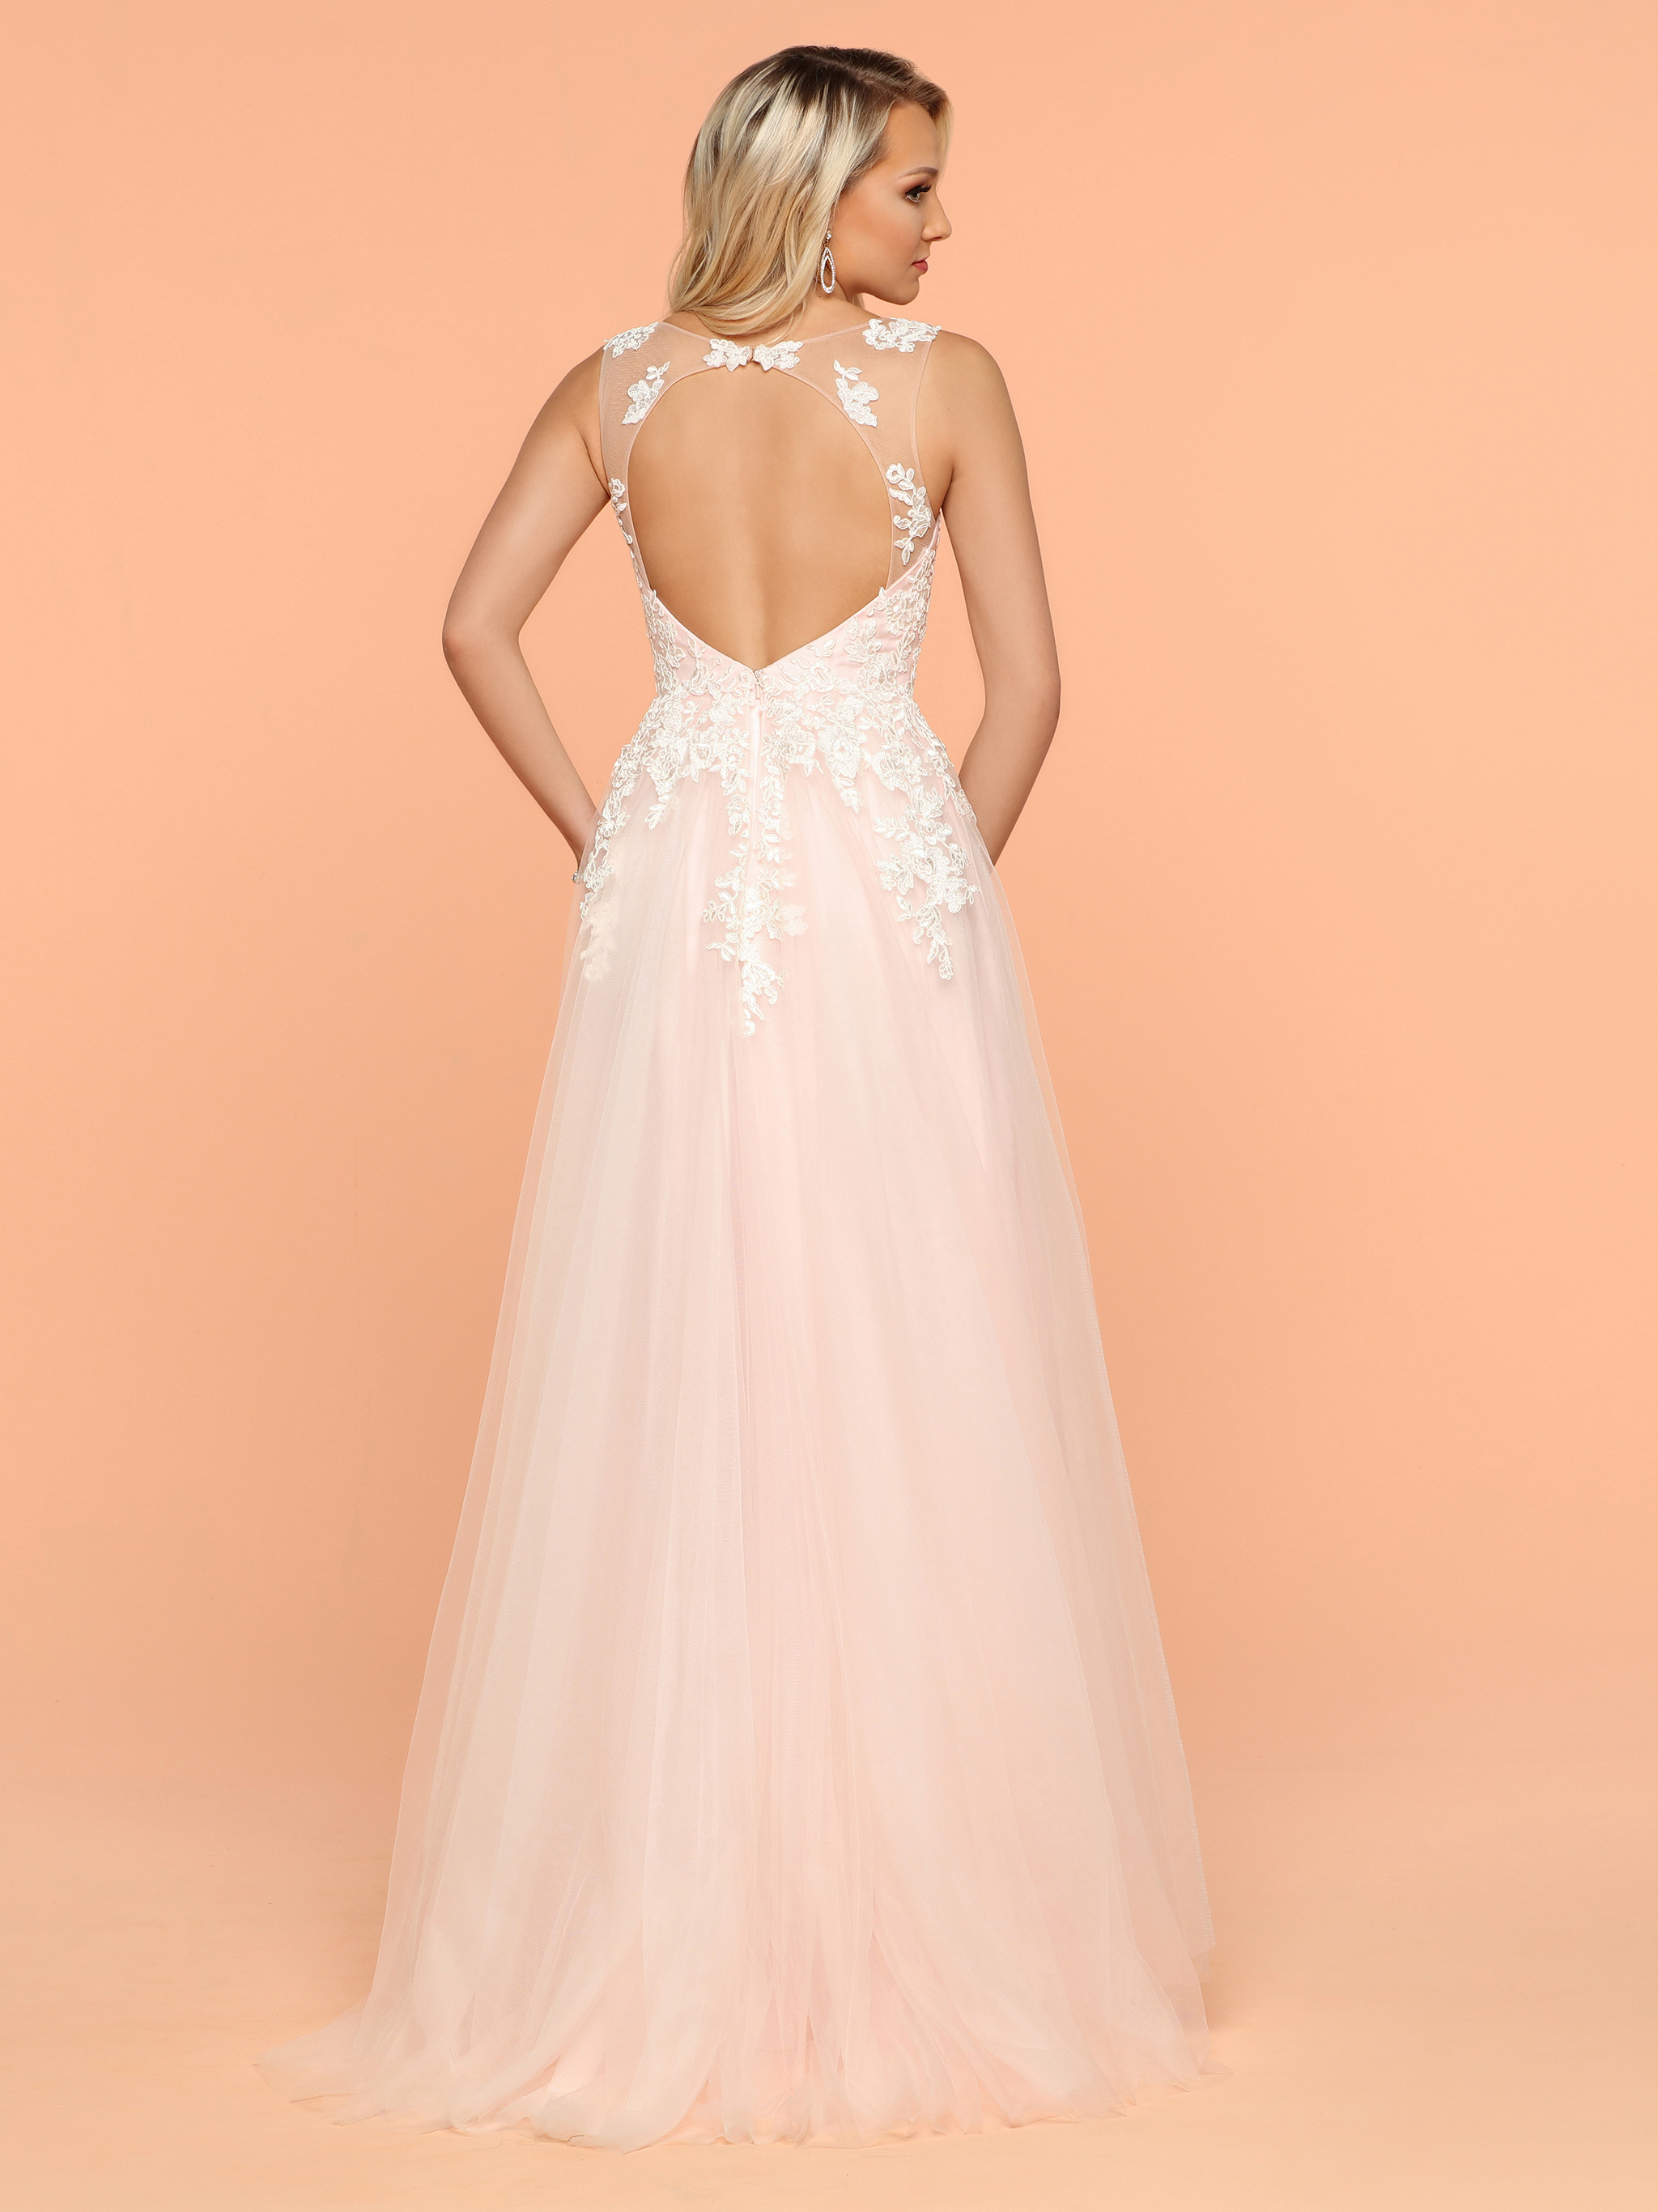 Image showing back view of style #71819